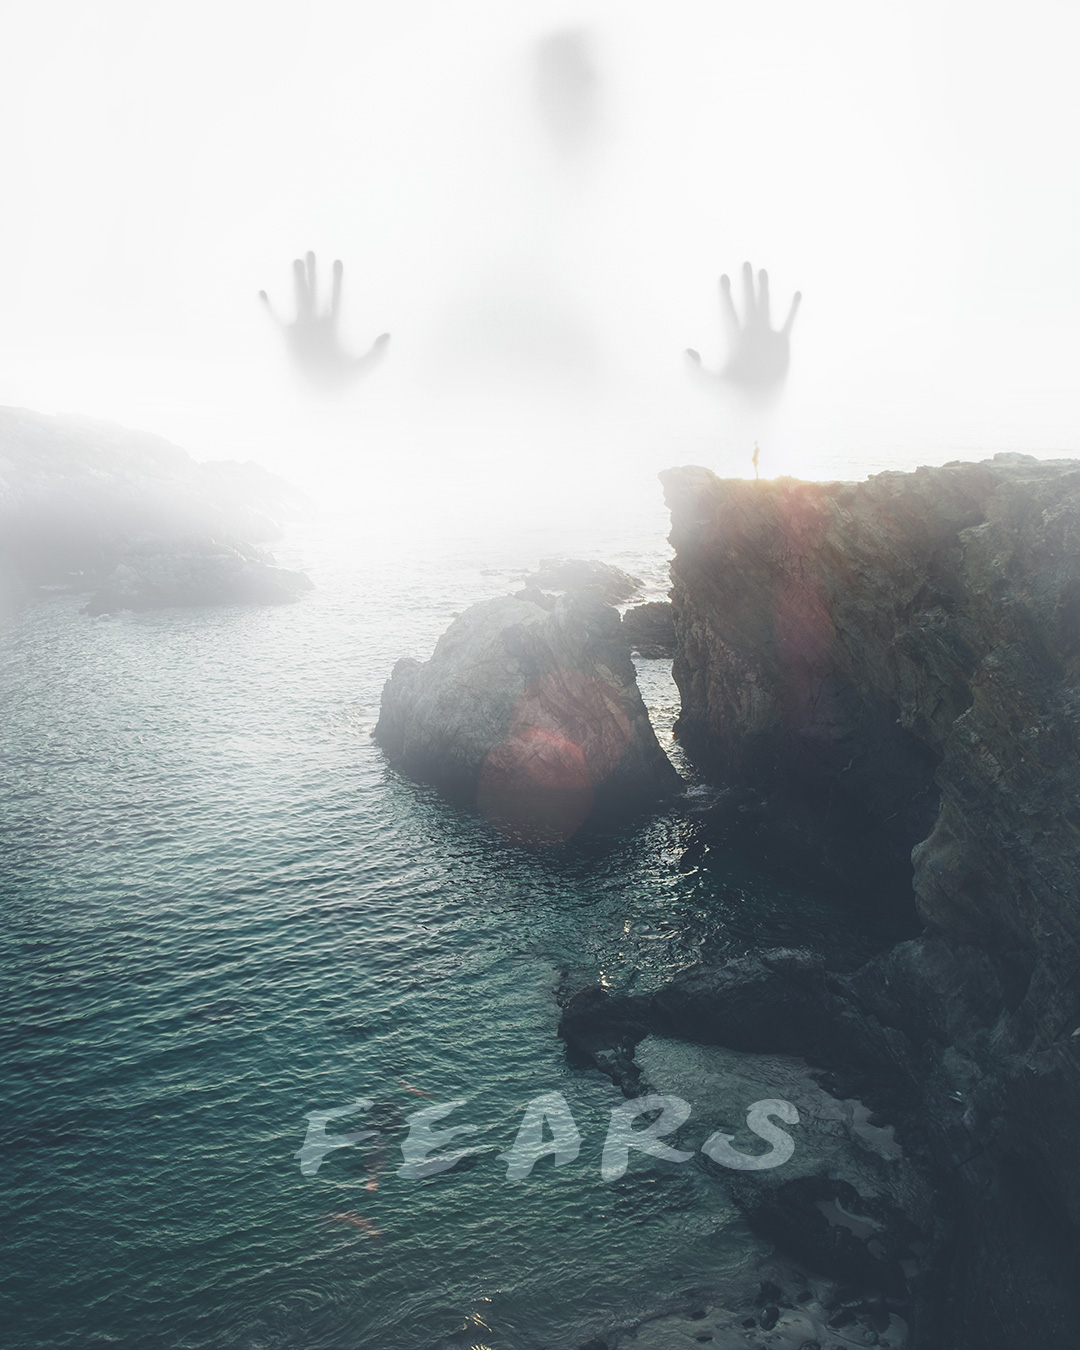 Fears-Motivational-Image-Quote